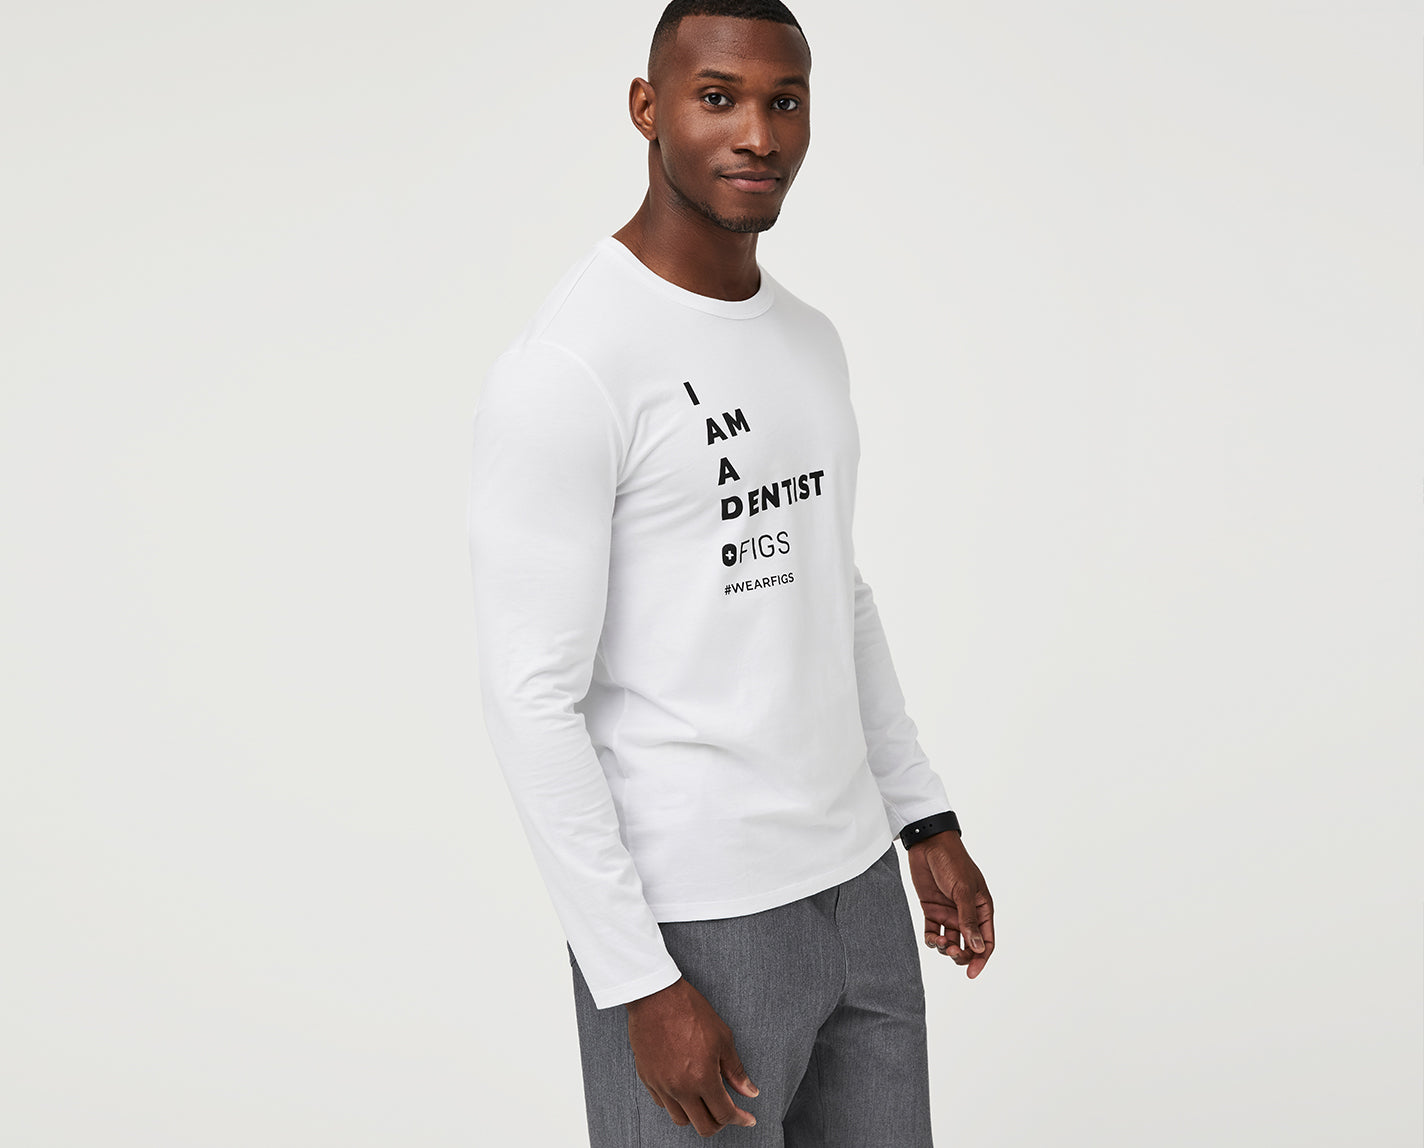 """Teeth are your business. The special """"I Am A Dentist"""" Underscrub has a relaxed fit, subtle curved hem and, of course, a graphic on the chest letting everyone know that healthy teeth and gums are your thing."""